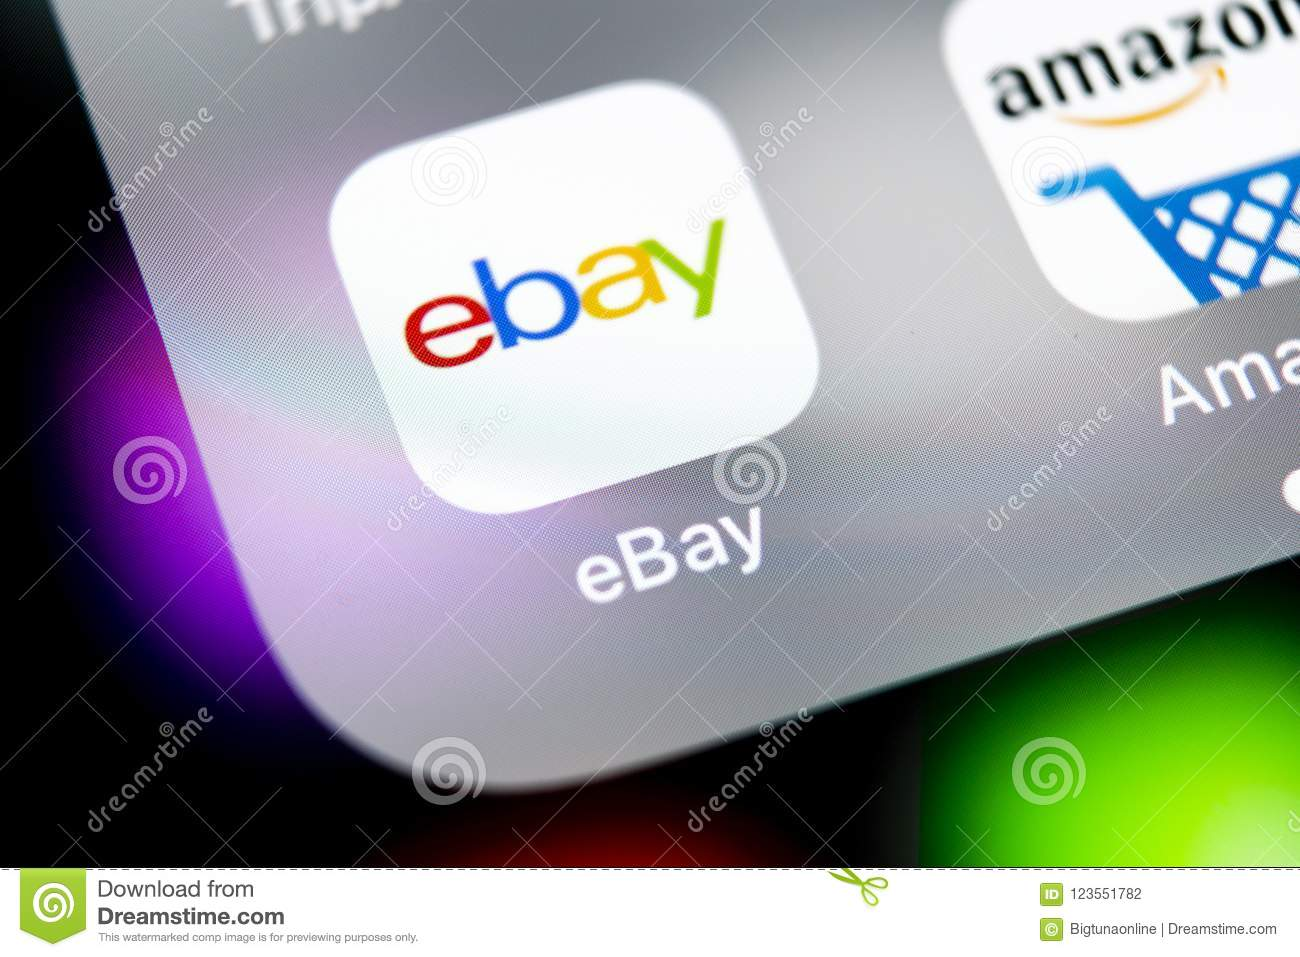 Ebay Application Icon On Apple Iphone X Screen Close Up Ebay App Icon Ebay Com Is Largest Online Auction And Shopping Websites Editorial Photography Image Of Homepage Economy 123551782